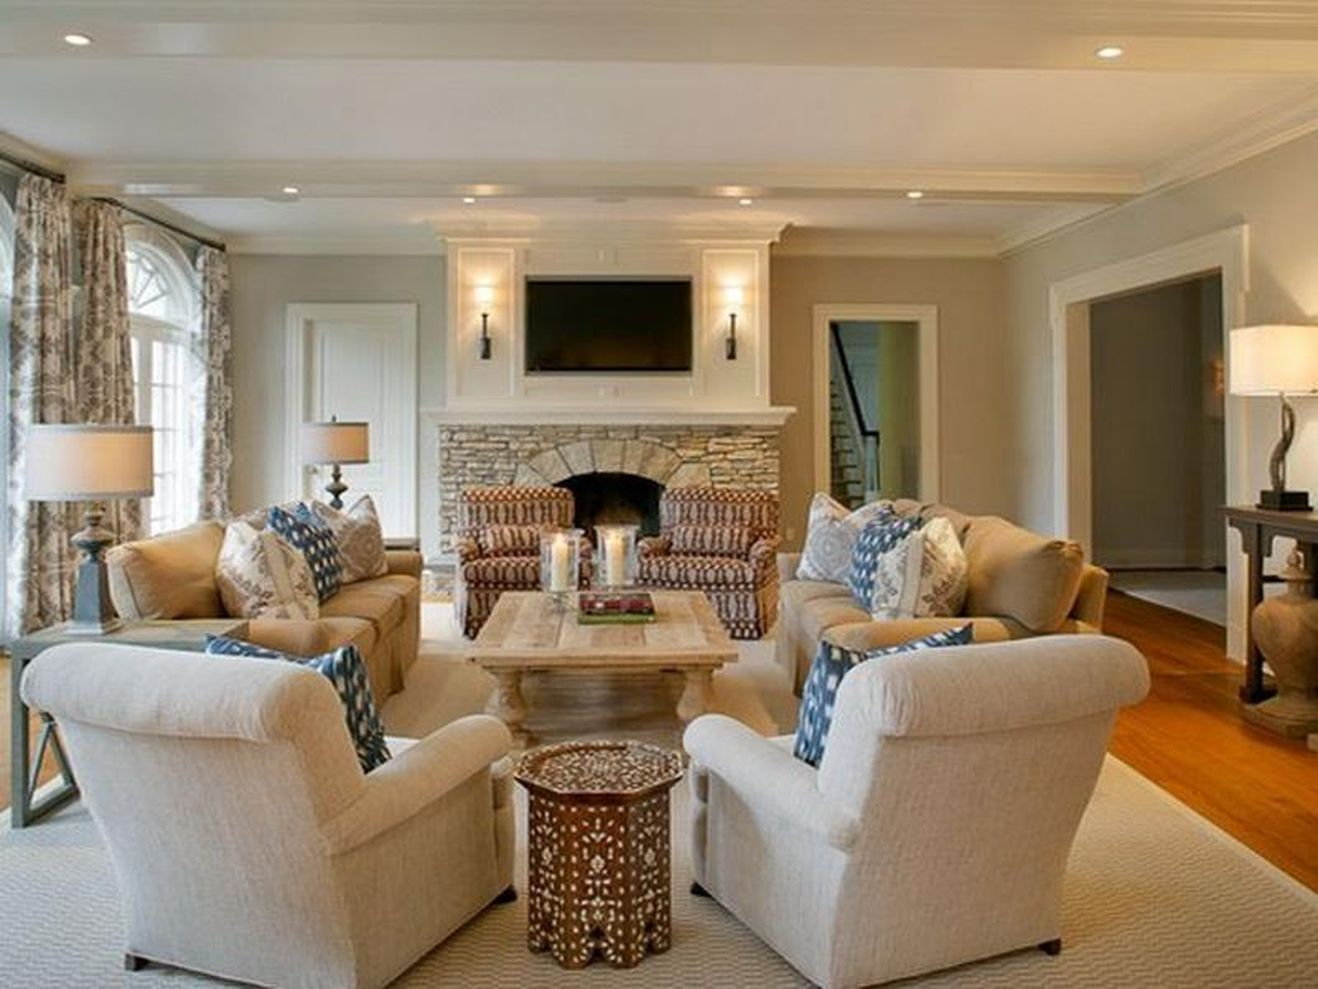 Awesome 61 Simple Living Room Design Ideas With Tv Rectangular